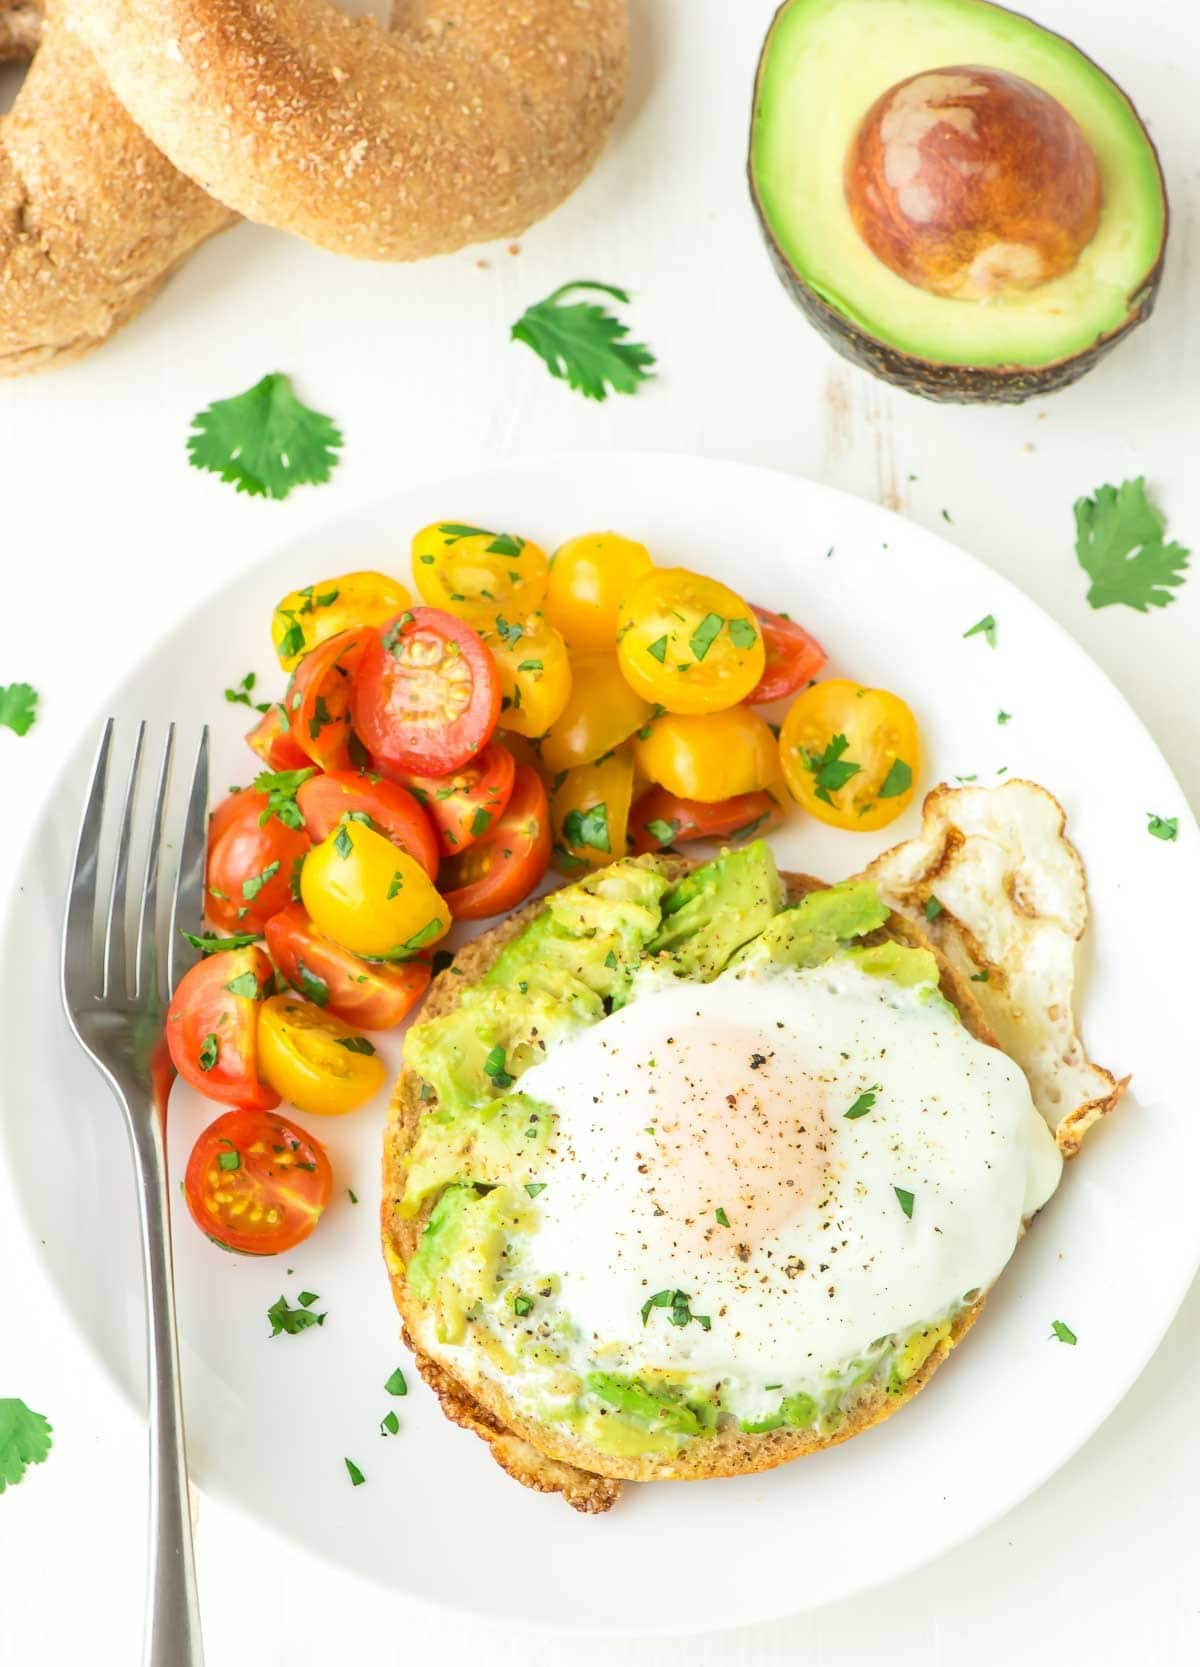 Move over avocado toast! This egg in a hole cooked inside a bagel with smashed avocado is easier and more filling. Our family loves this easy breakfast, and it's perfect for quick lunches and light dinners too! @wellplated